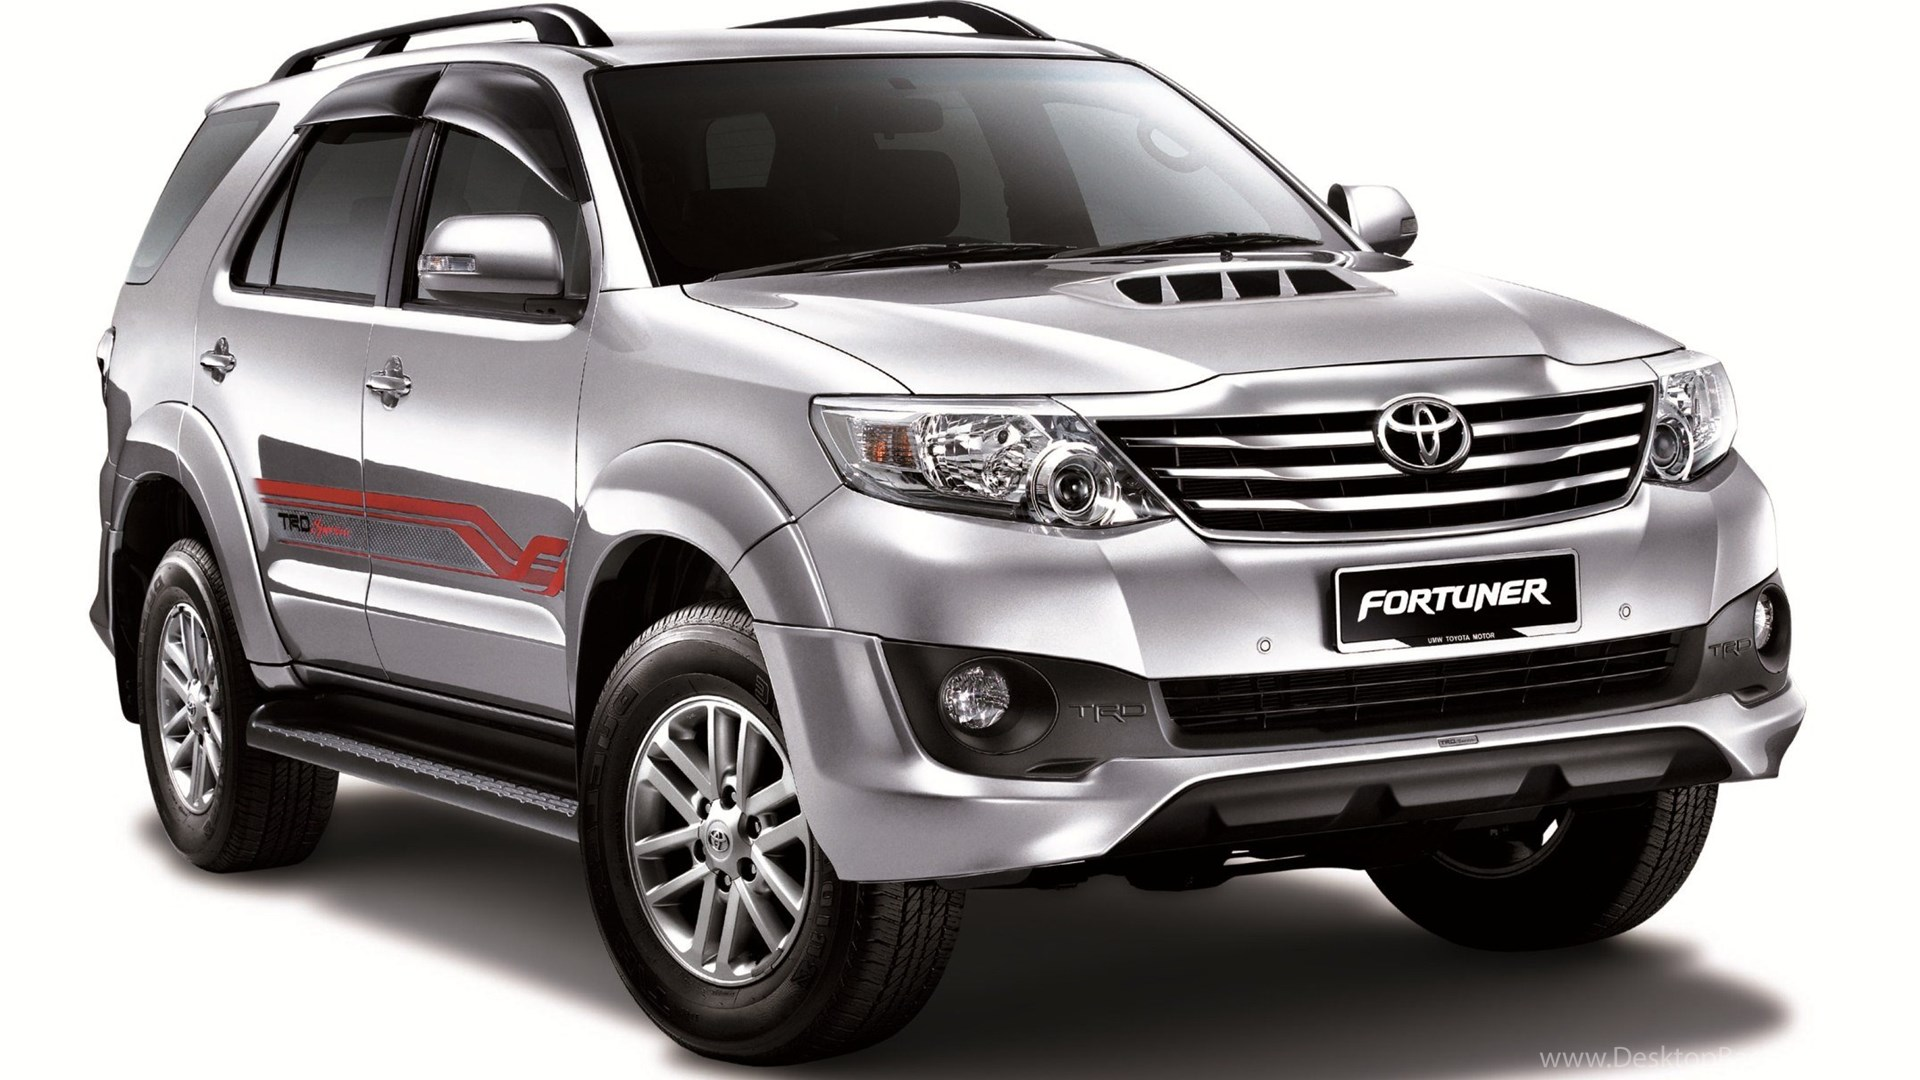 Picture 2016, 2015 Toyota Fortuner HD Car Wallpapers Cars ...